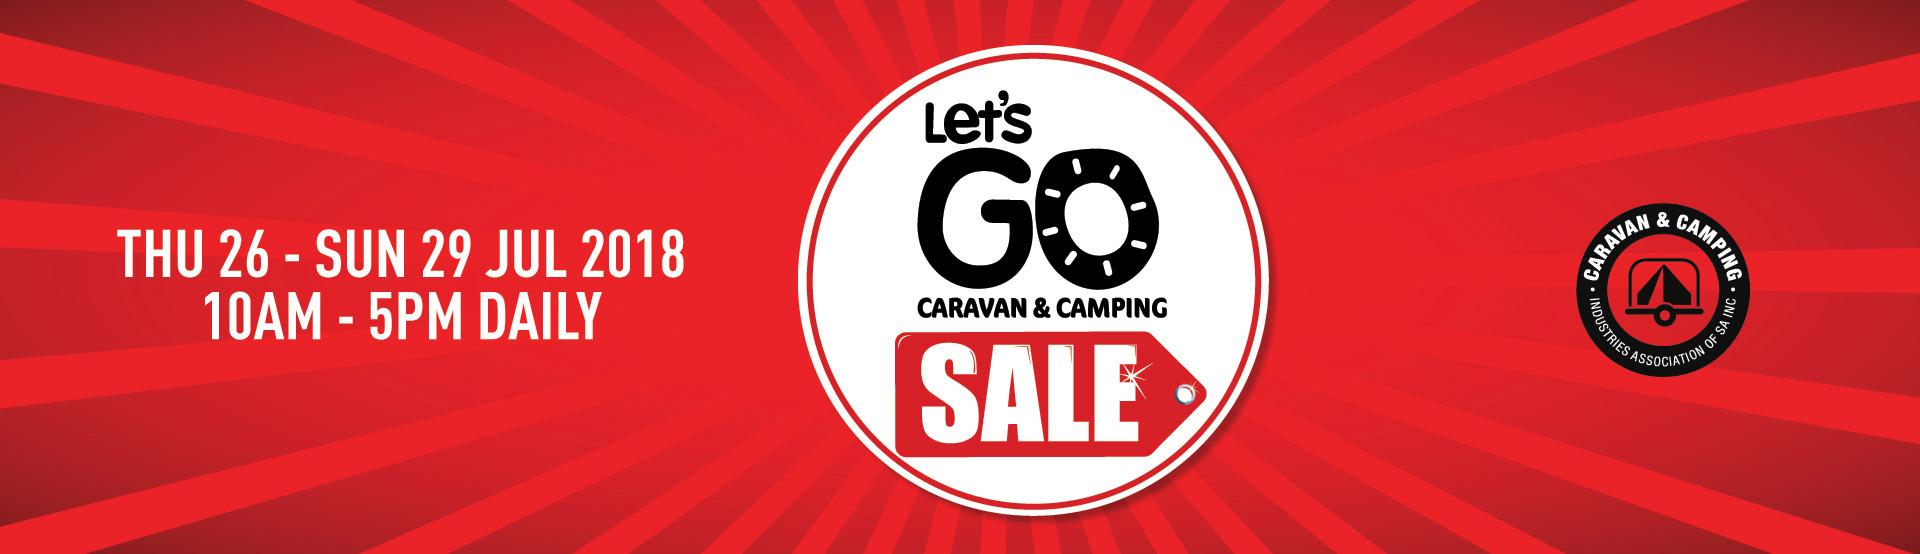 Let's Go Caravan and Camping Sale